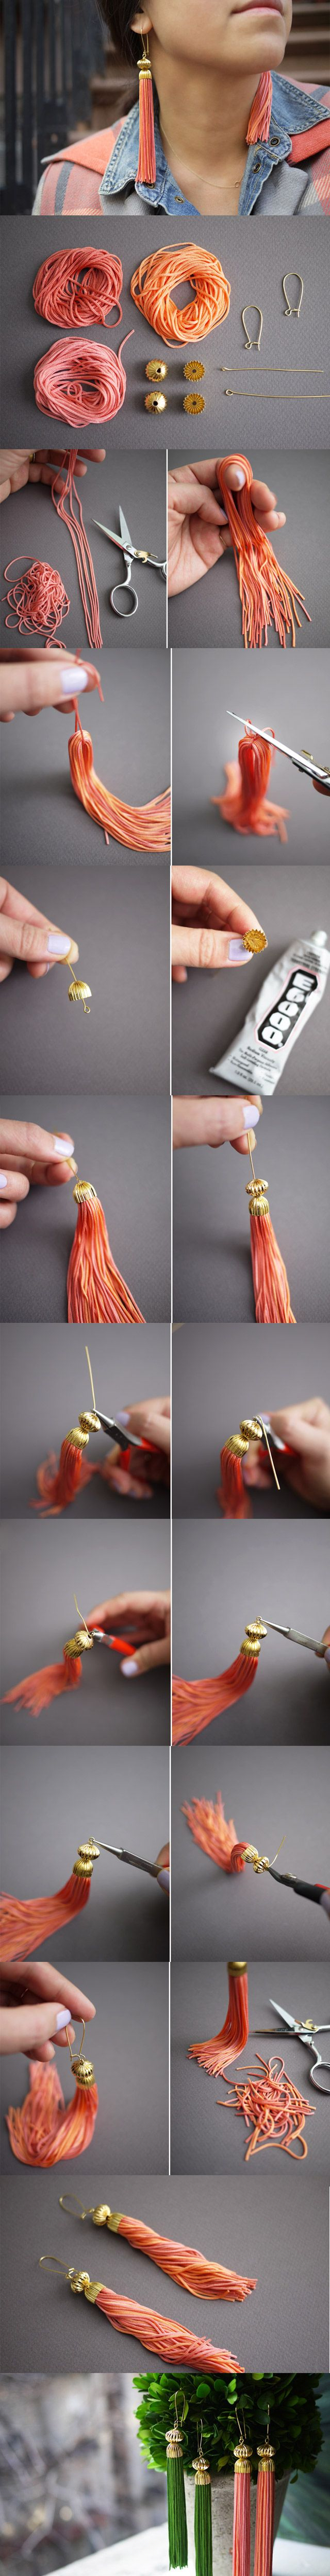 12 Interesting And Useful Daily DIY Ideas, DIY Tassel Earrings